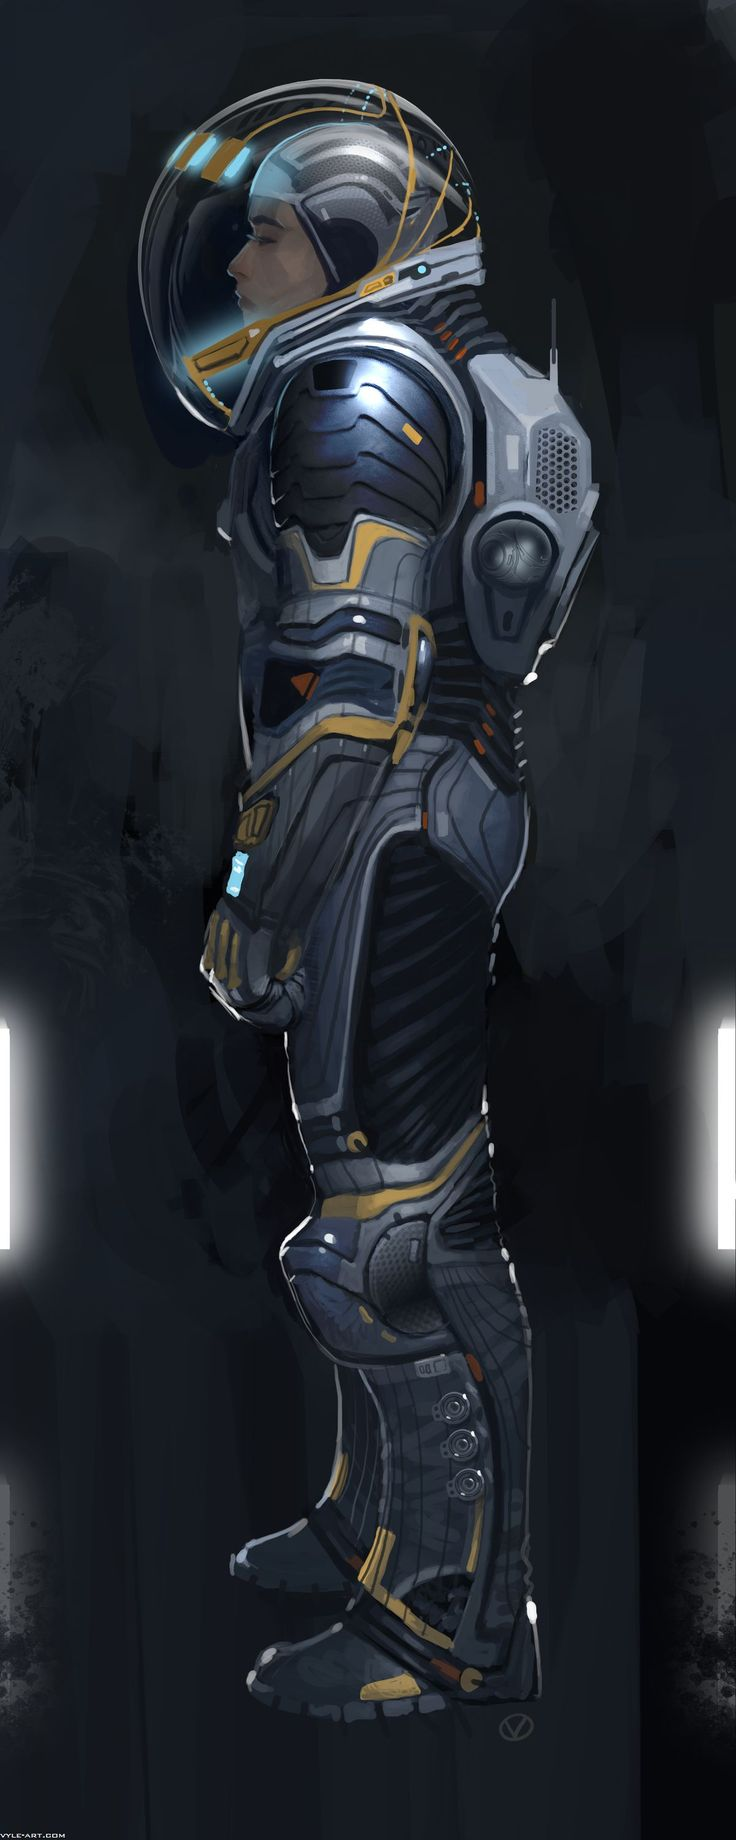 67 best SCI-FI SPACESUITS images on Pinterest | Character ...